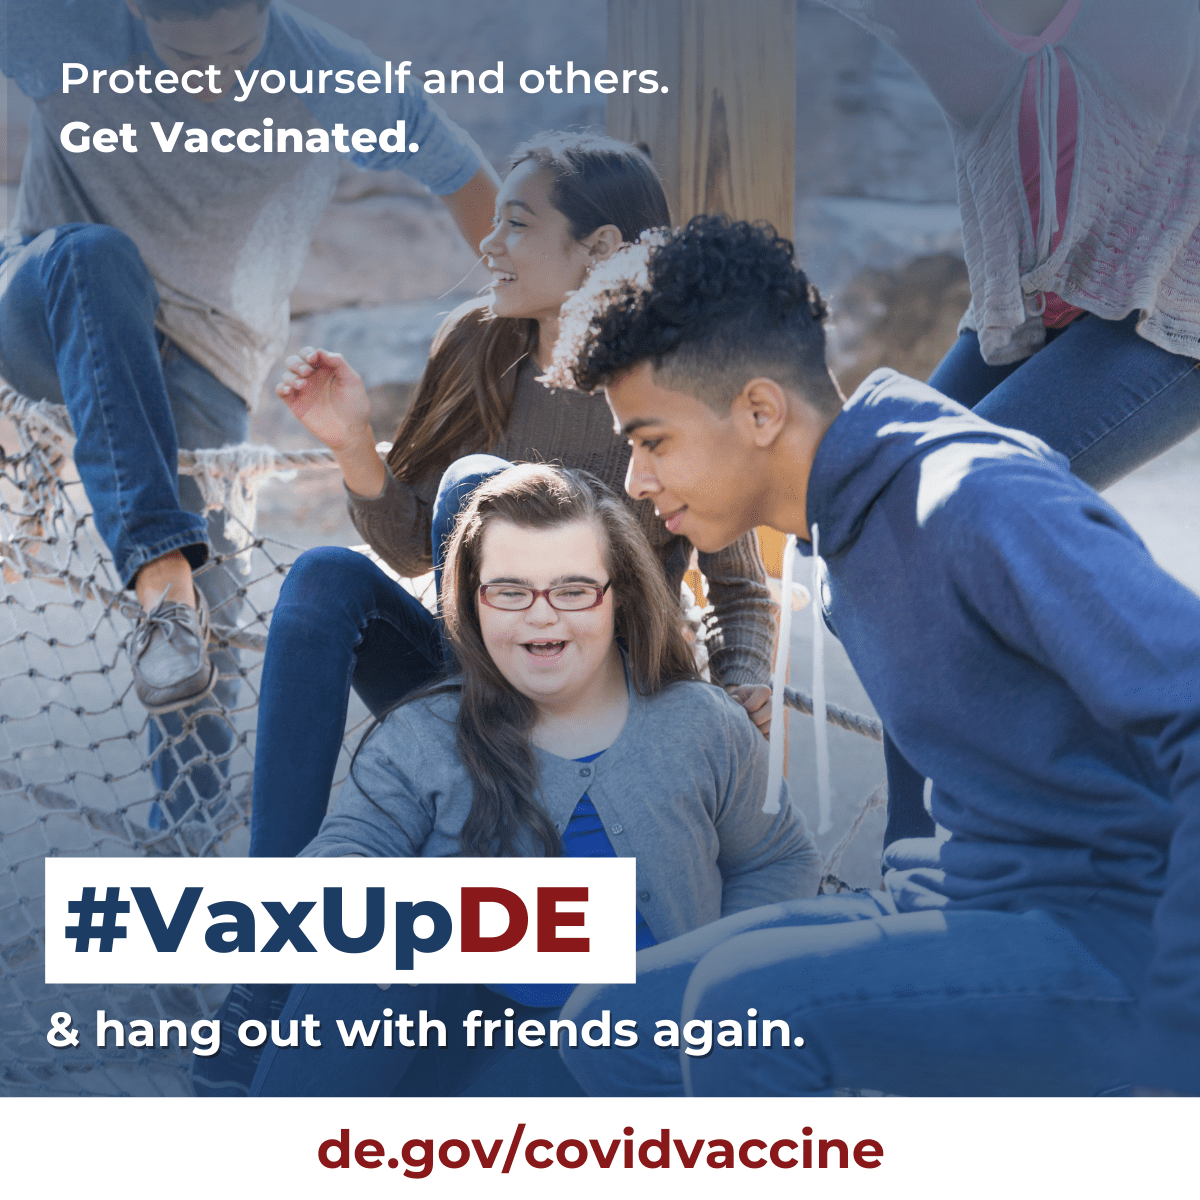 VaxUpDE. Protect yourself and others. Get Vaccinated. Kids give a high five while at a sports tournament.